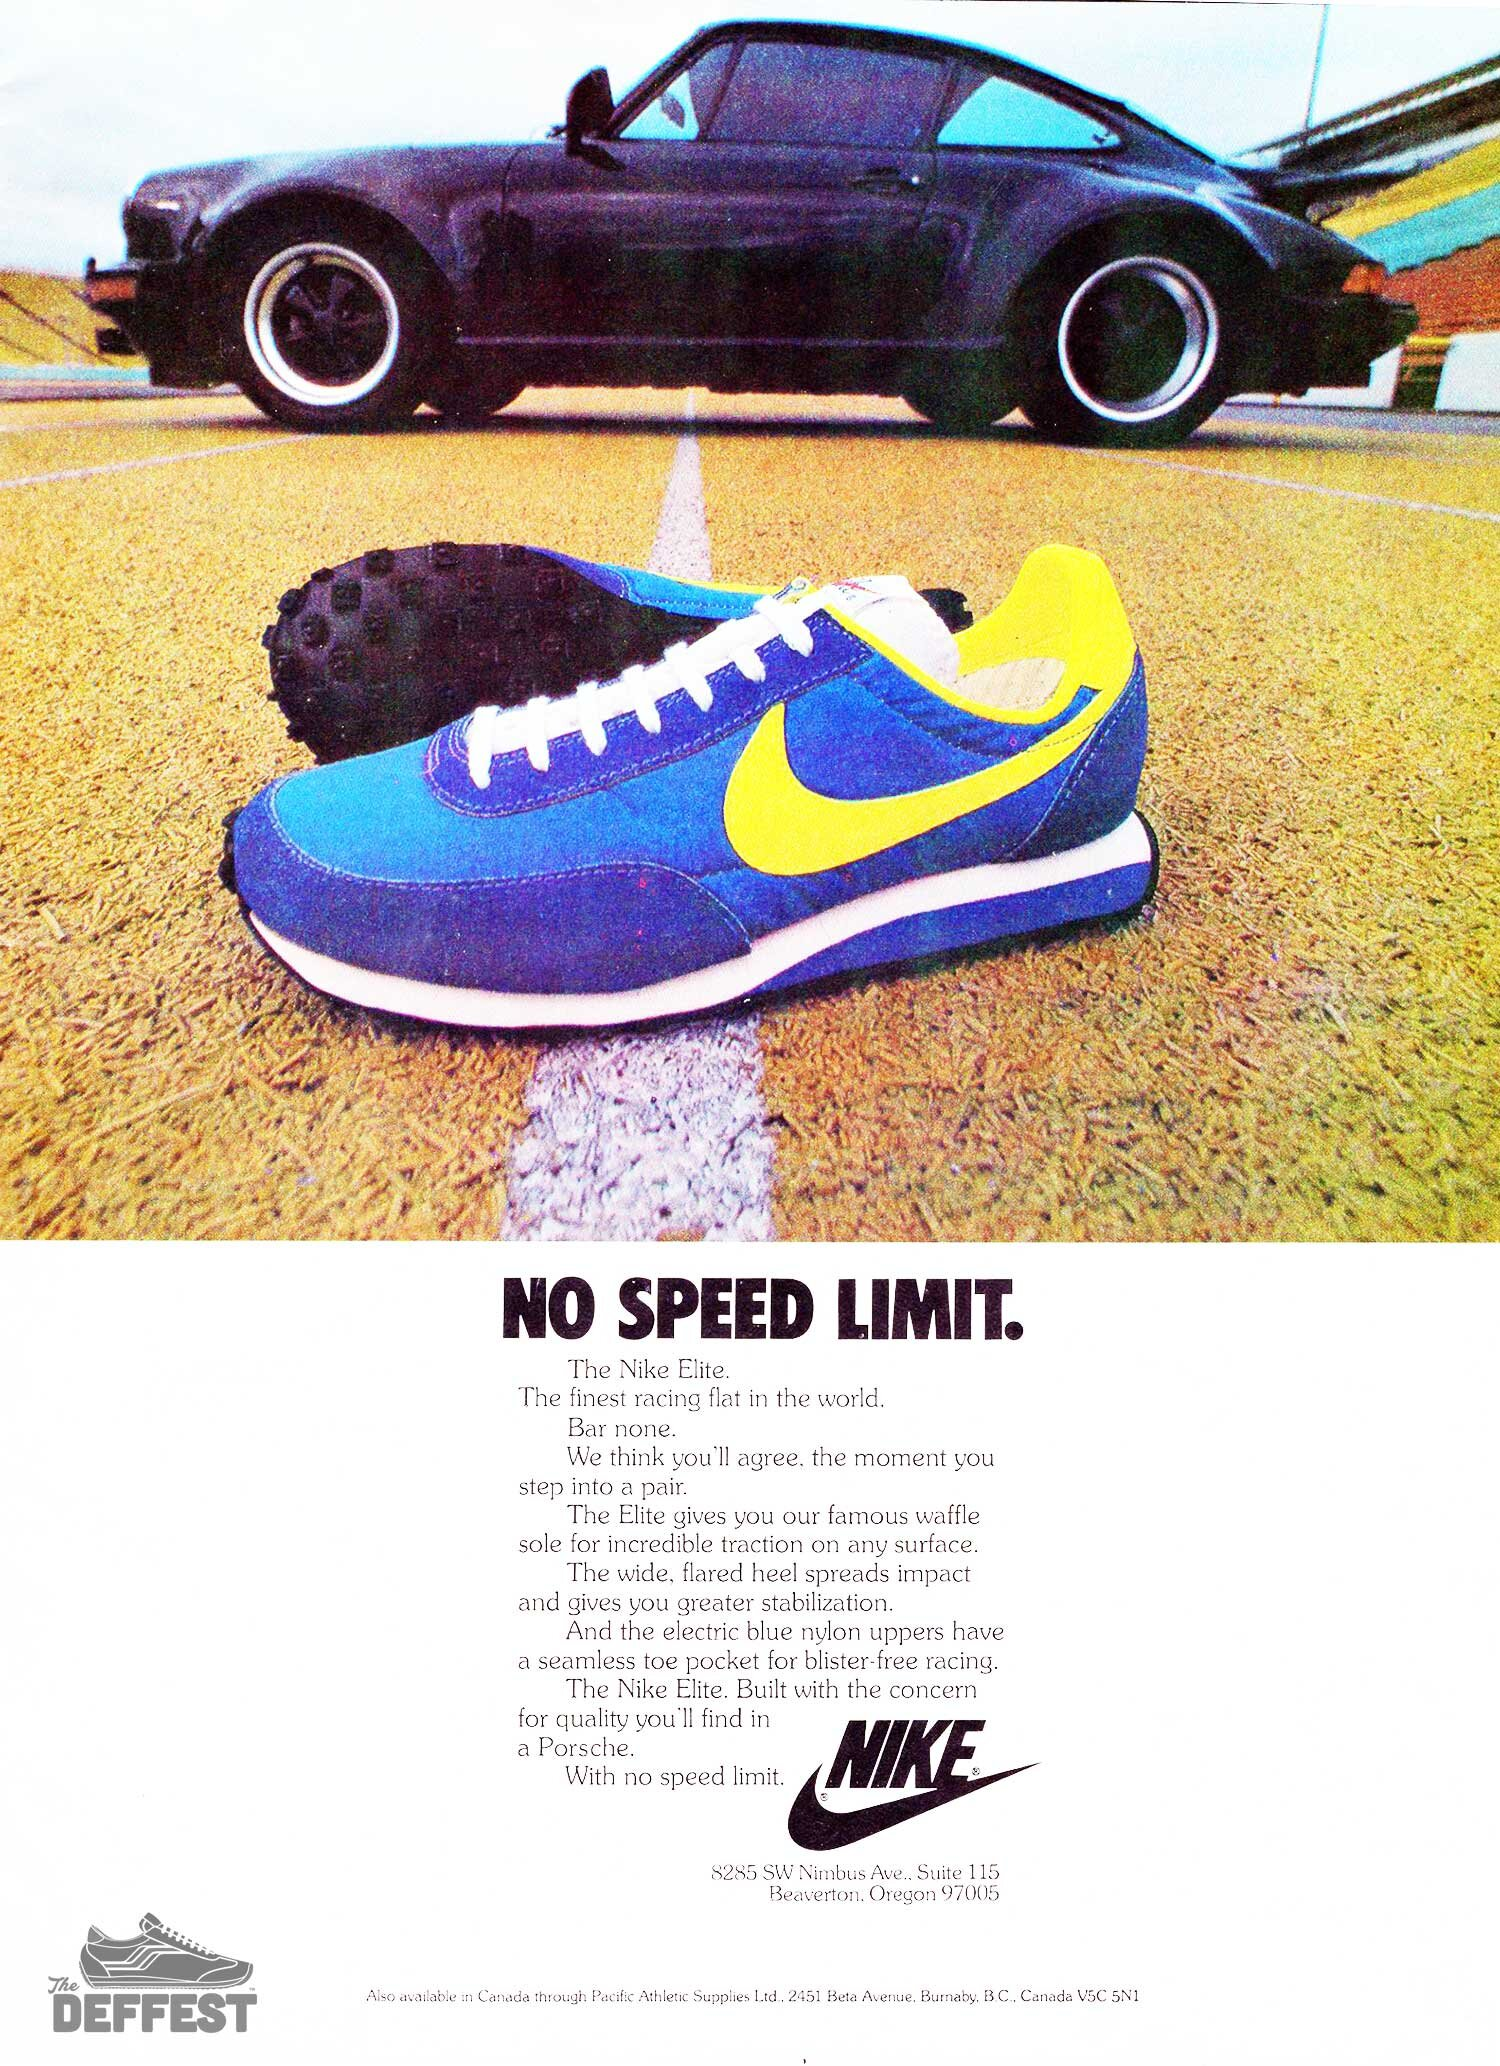 Iconic Sneakers The Deffest A Vintage And Retro Sneaker Blog Vintage Ads